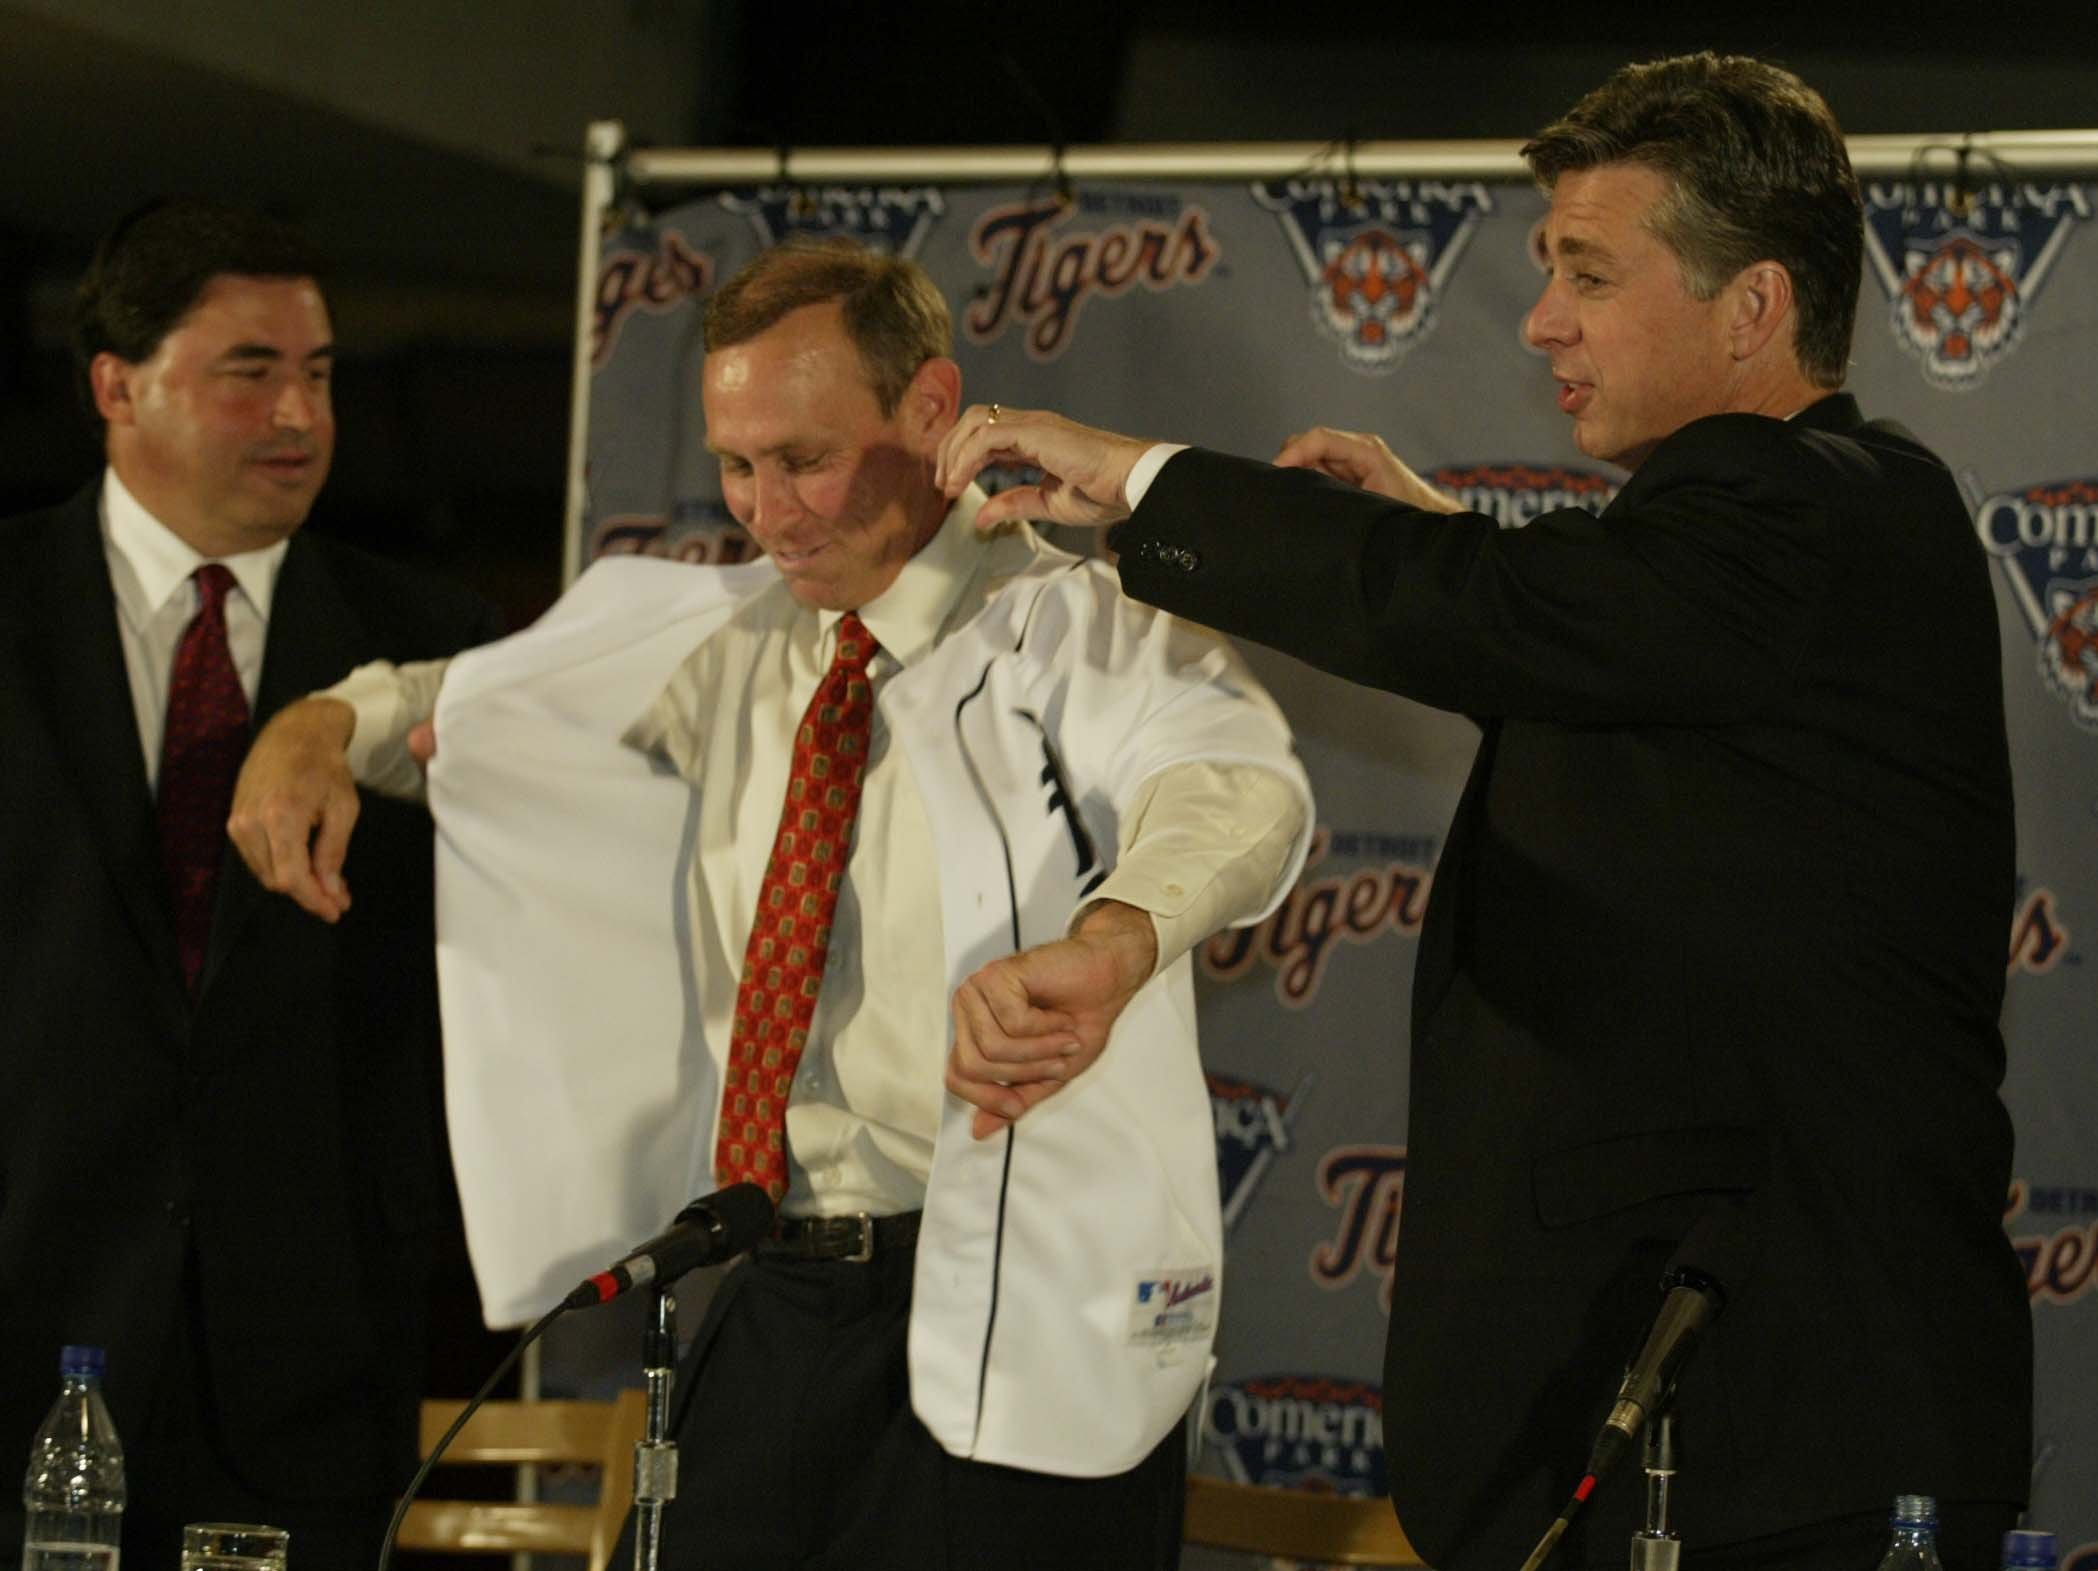 Alan Trammell gets a helping hand with his jersey from Tigers general manager Dave Dombrowski during a press conference to announce Trammell as the new Detroit Tigers manager while at Joe Louis Arena on Wednesday, October 9, 2002.